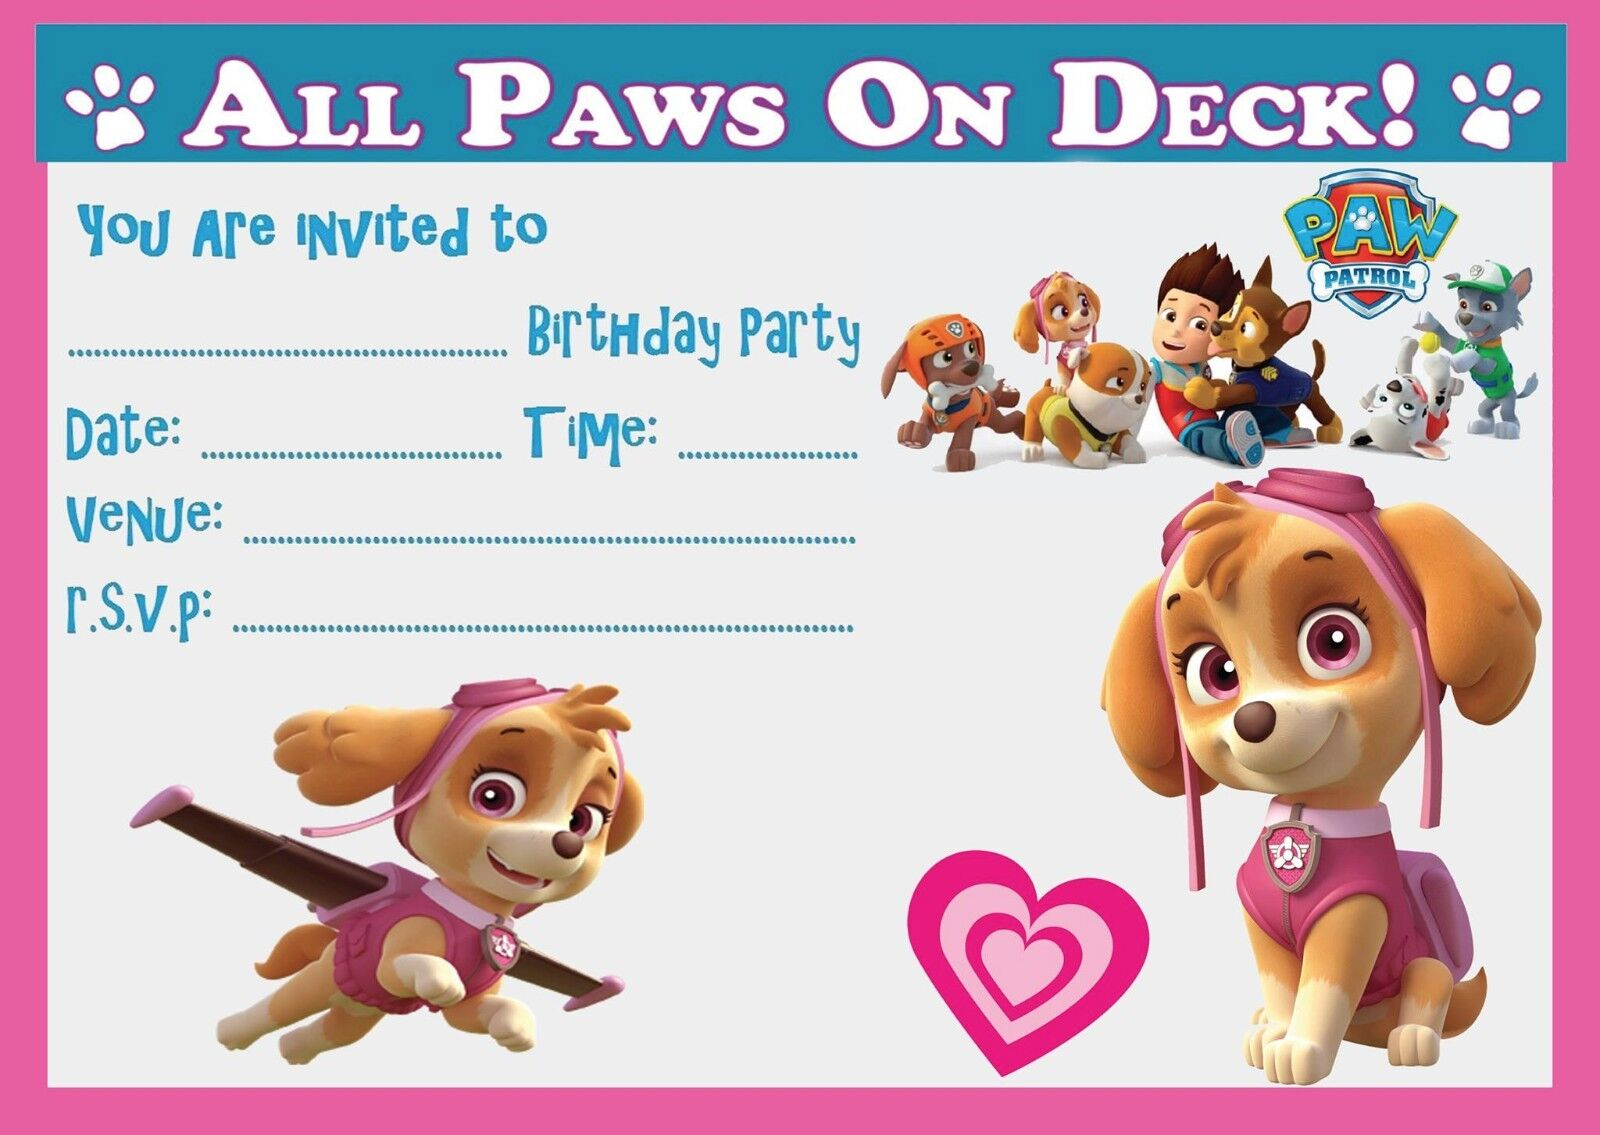 PAW PATROL SKYE BIRTHDAY PARTY INVITATIONS INVITES  WITH OR